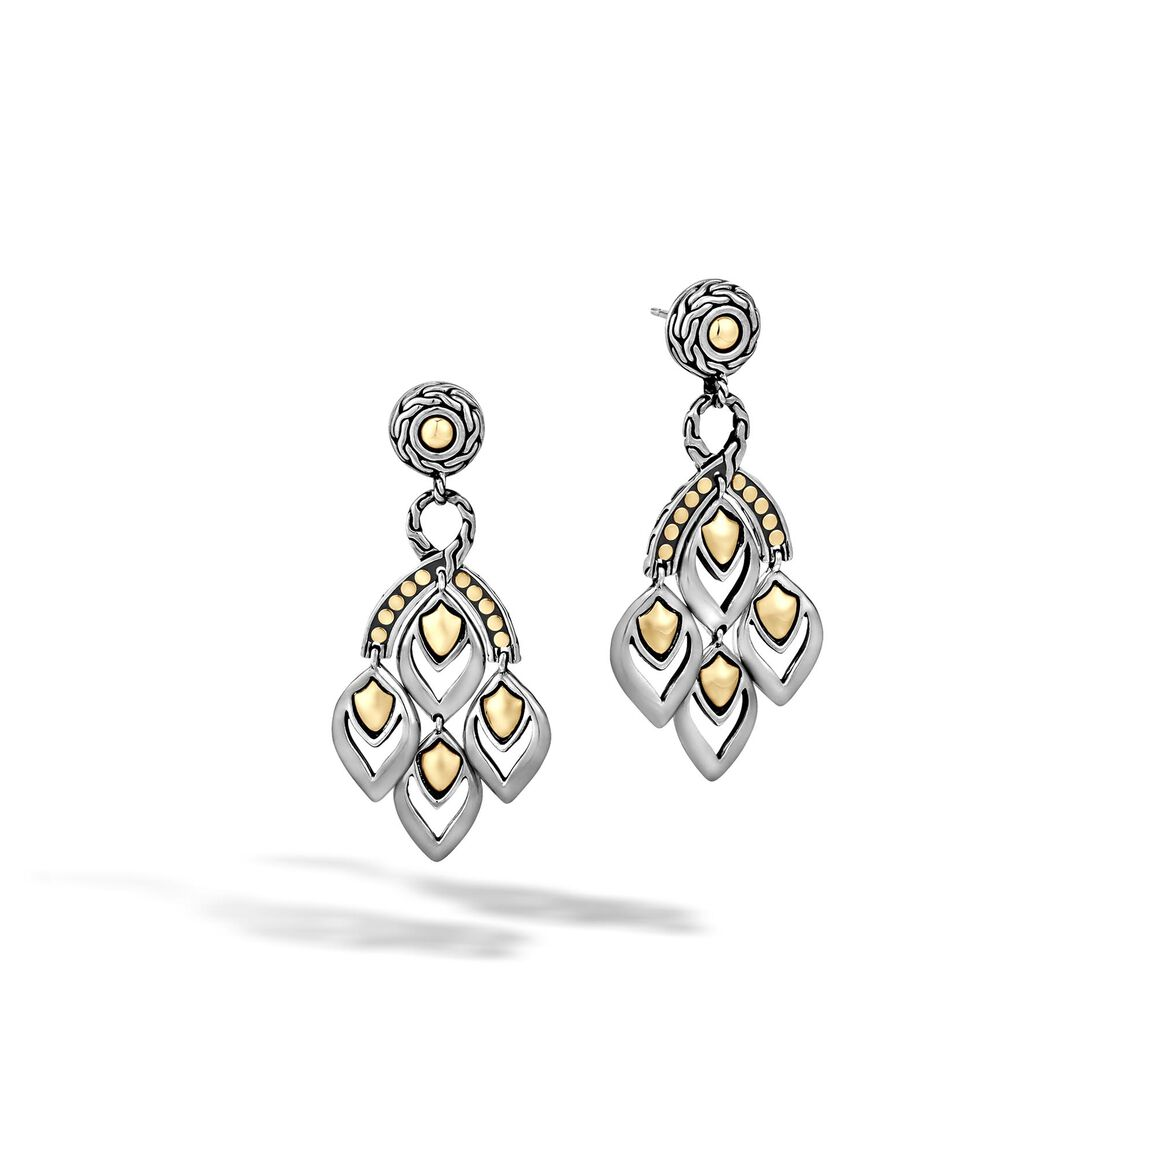 Legends Naga Chandelier Earring in Silver and 18K Gold